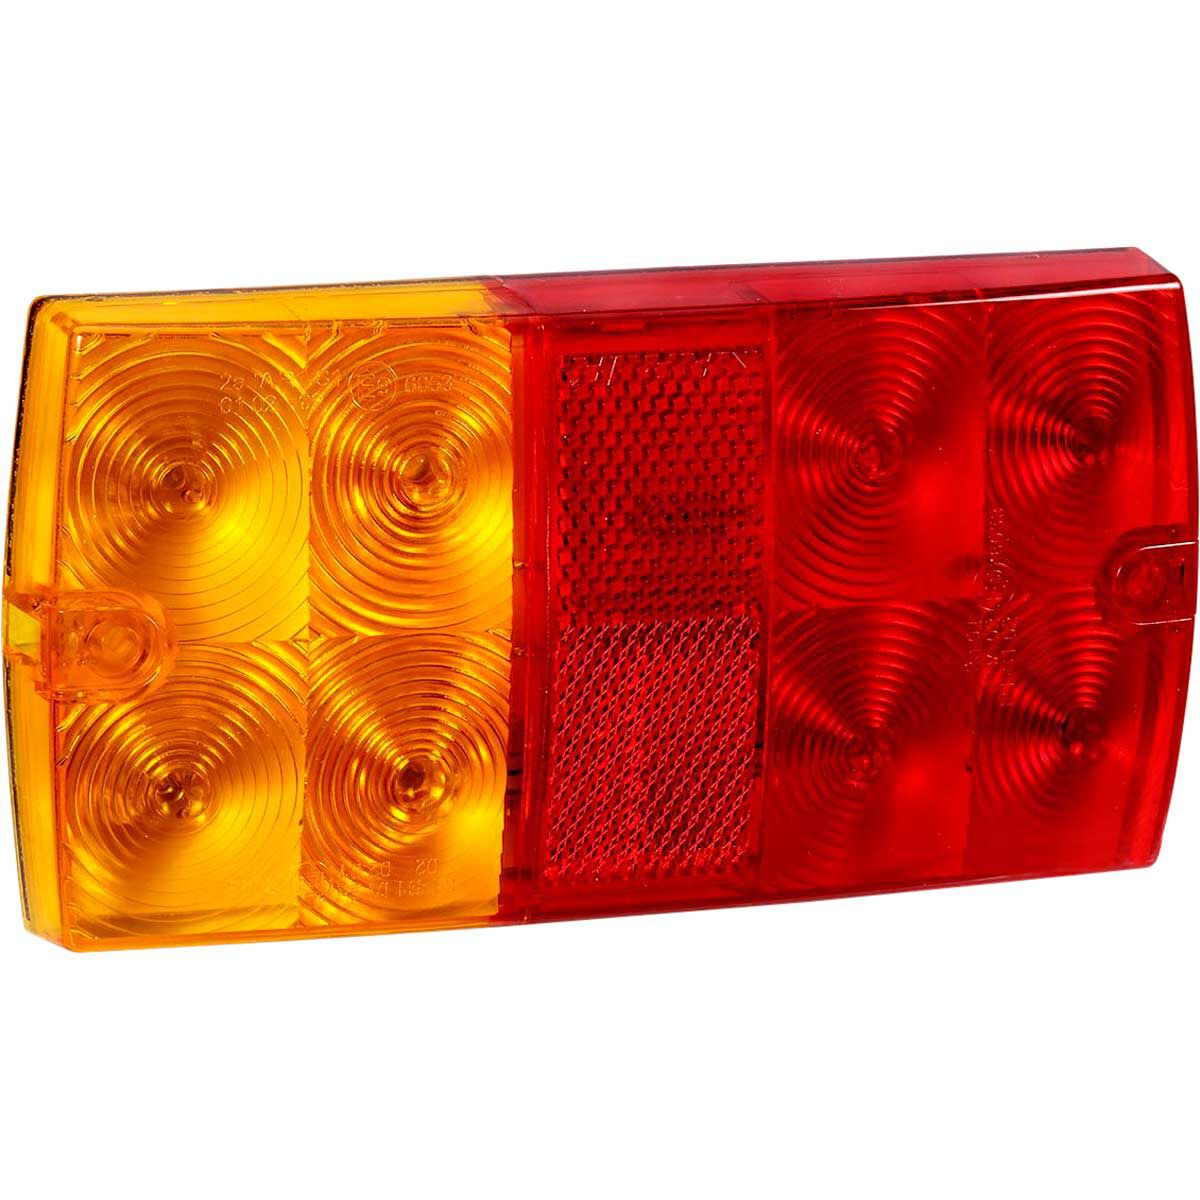 12 Volt Led Tail Light Diagram - 3 wire led tail lights wiring ...  Volt Led Light Wiring Diagram on 6 volt to 12 volt wiring diagram, 12 volt camper wiring diagram, 12 volt solar panel wiring diagram, 12 volt led truck lights, 12 volt marine wiring diagram, 12 volt boat wiring, led dimming wiring diagram, 12 volt 4 pin relay wiring diagrams, 12 volt motor wiring diagram, 12v led circuit diagram, 12 volt photocell wiring-diagram, 12 volt flasher wiring-diagram, 12 volt battery wiring, 12 volt wiring basics, car 12v led wiring diagram, 12 volt led circuit, 24 volt alternator wiring diagram, 12 volt waterproof led lights, 12 volt parallel wiring diagram, 12 volt rocker switch wiring diagram,